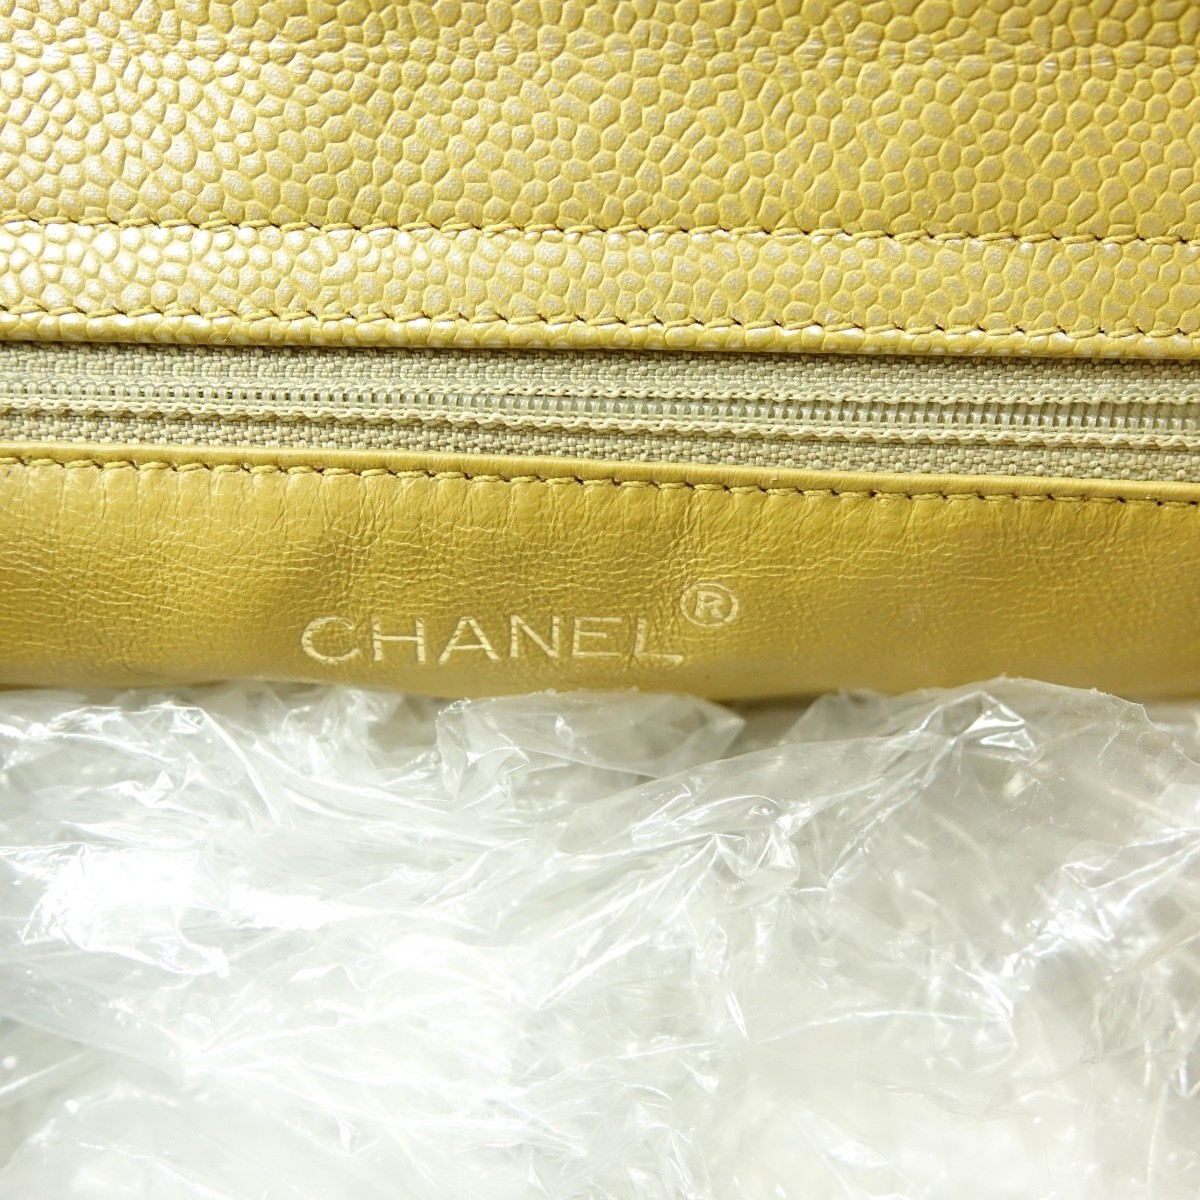 Chanel Metallic Tan Zip Top Quilted Leather Bag